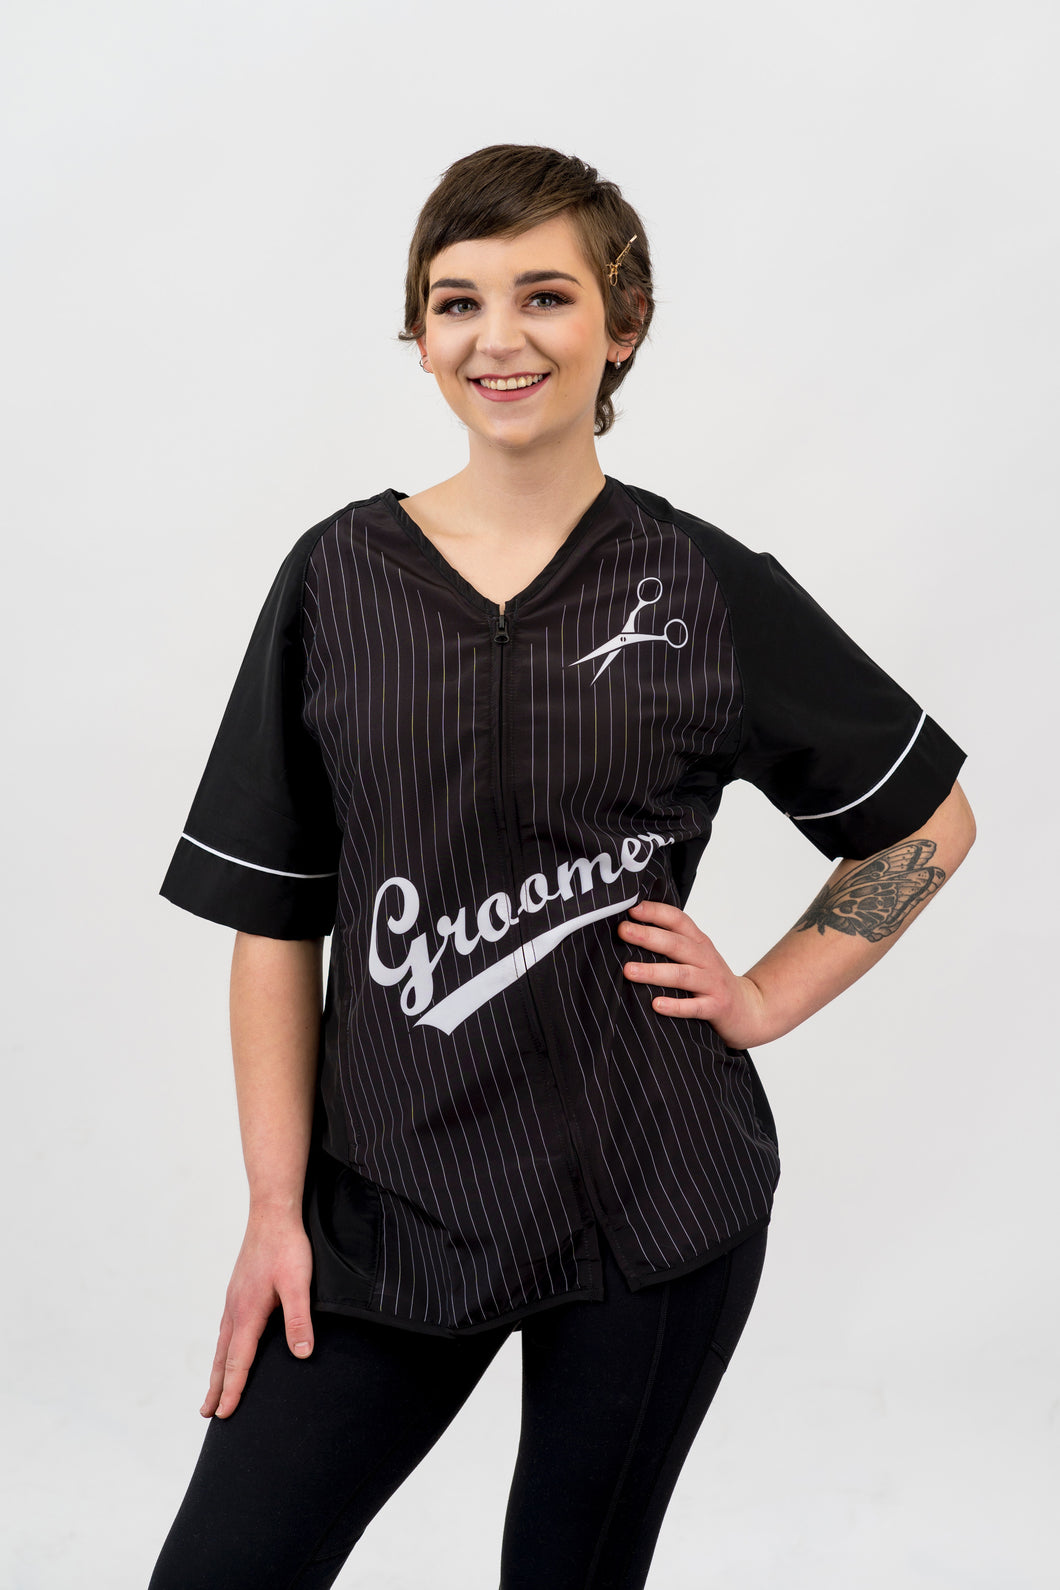 Women's Smock – Baseball-Groomer